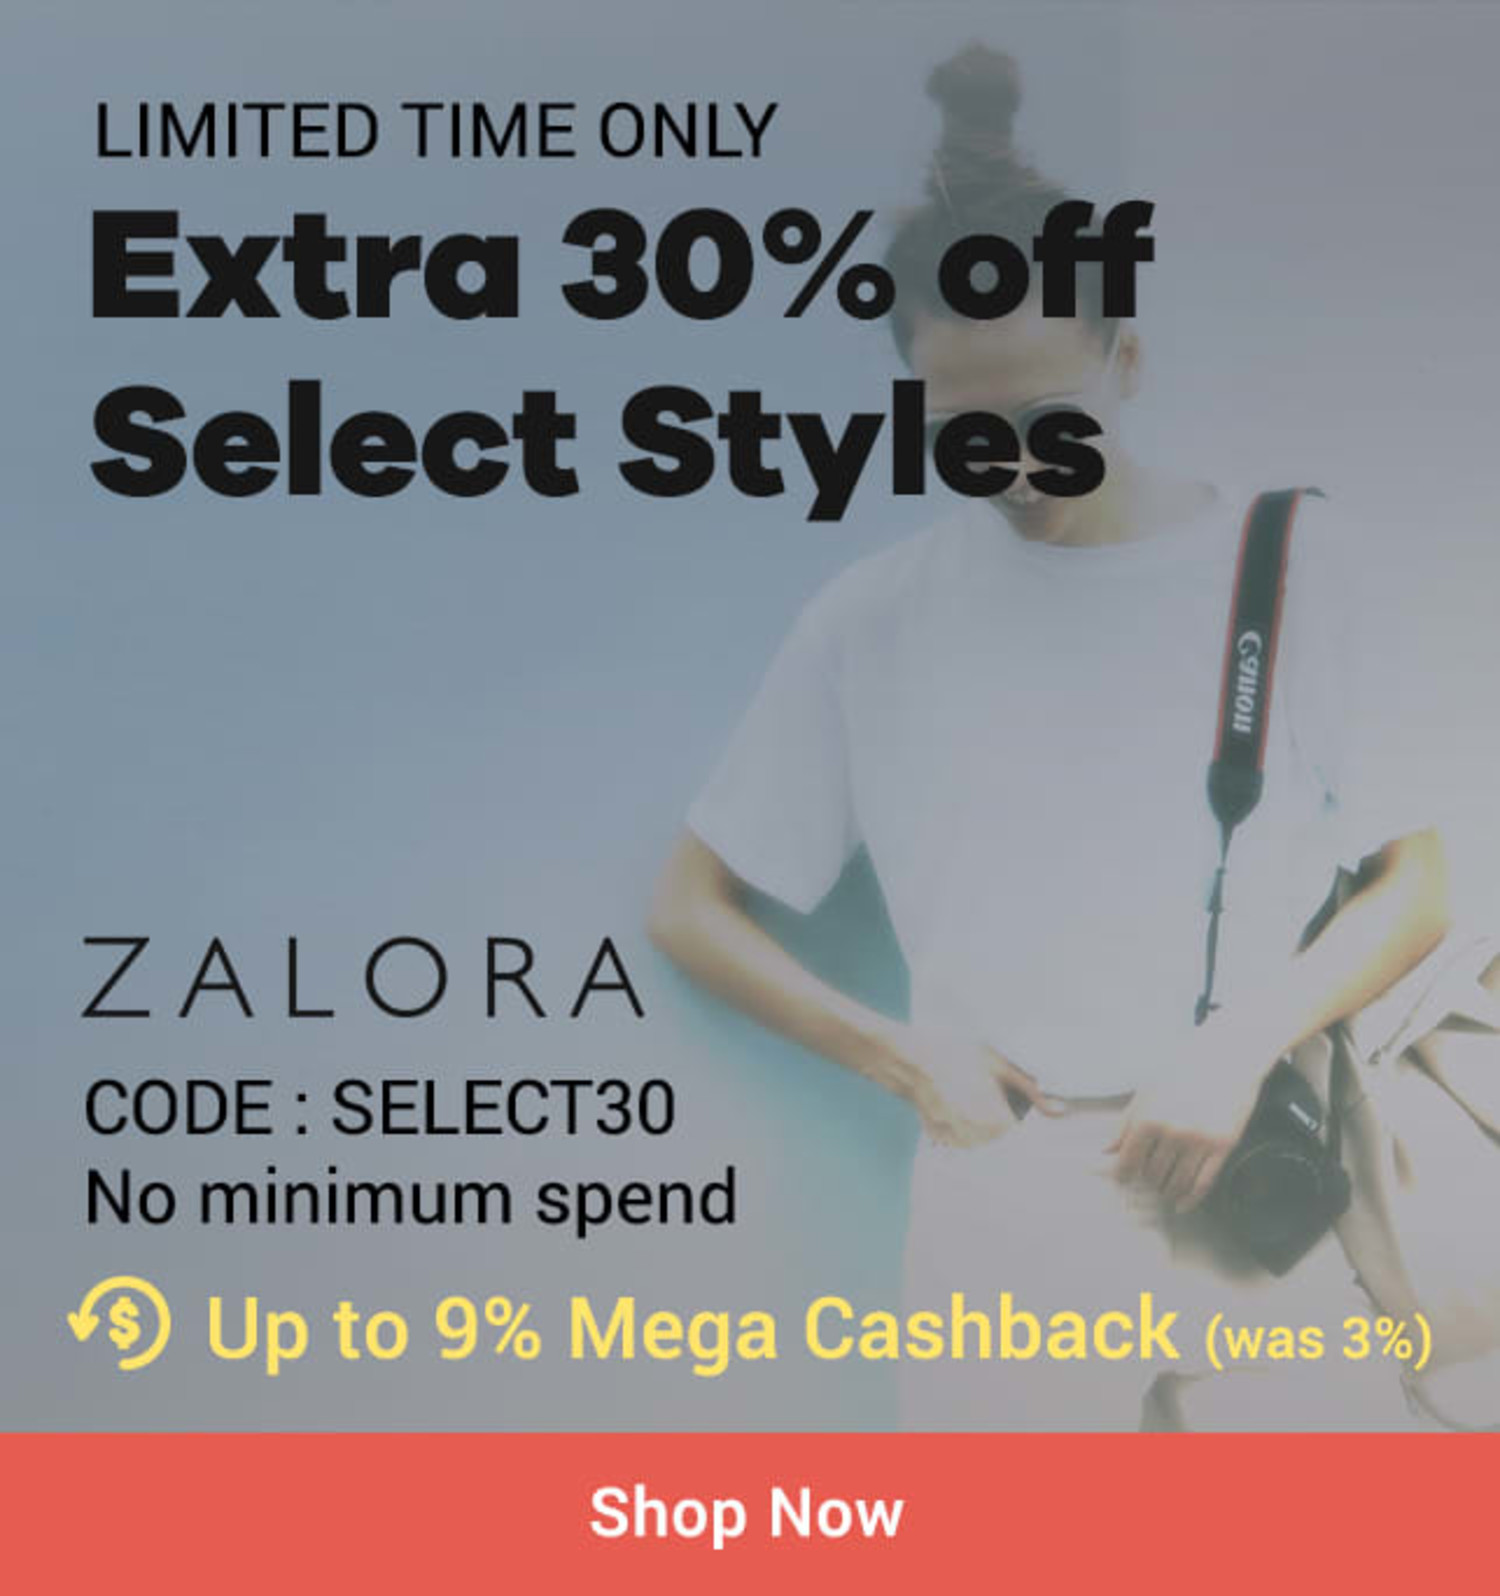 ZALORA Extra 30% off select styles + Up to 9% Mega Cashback